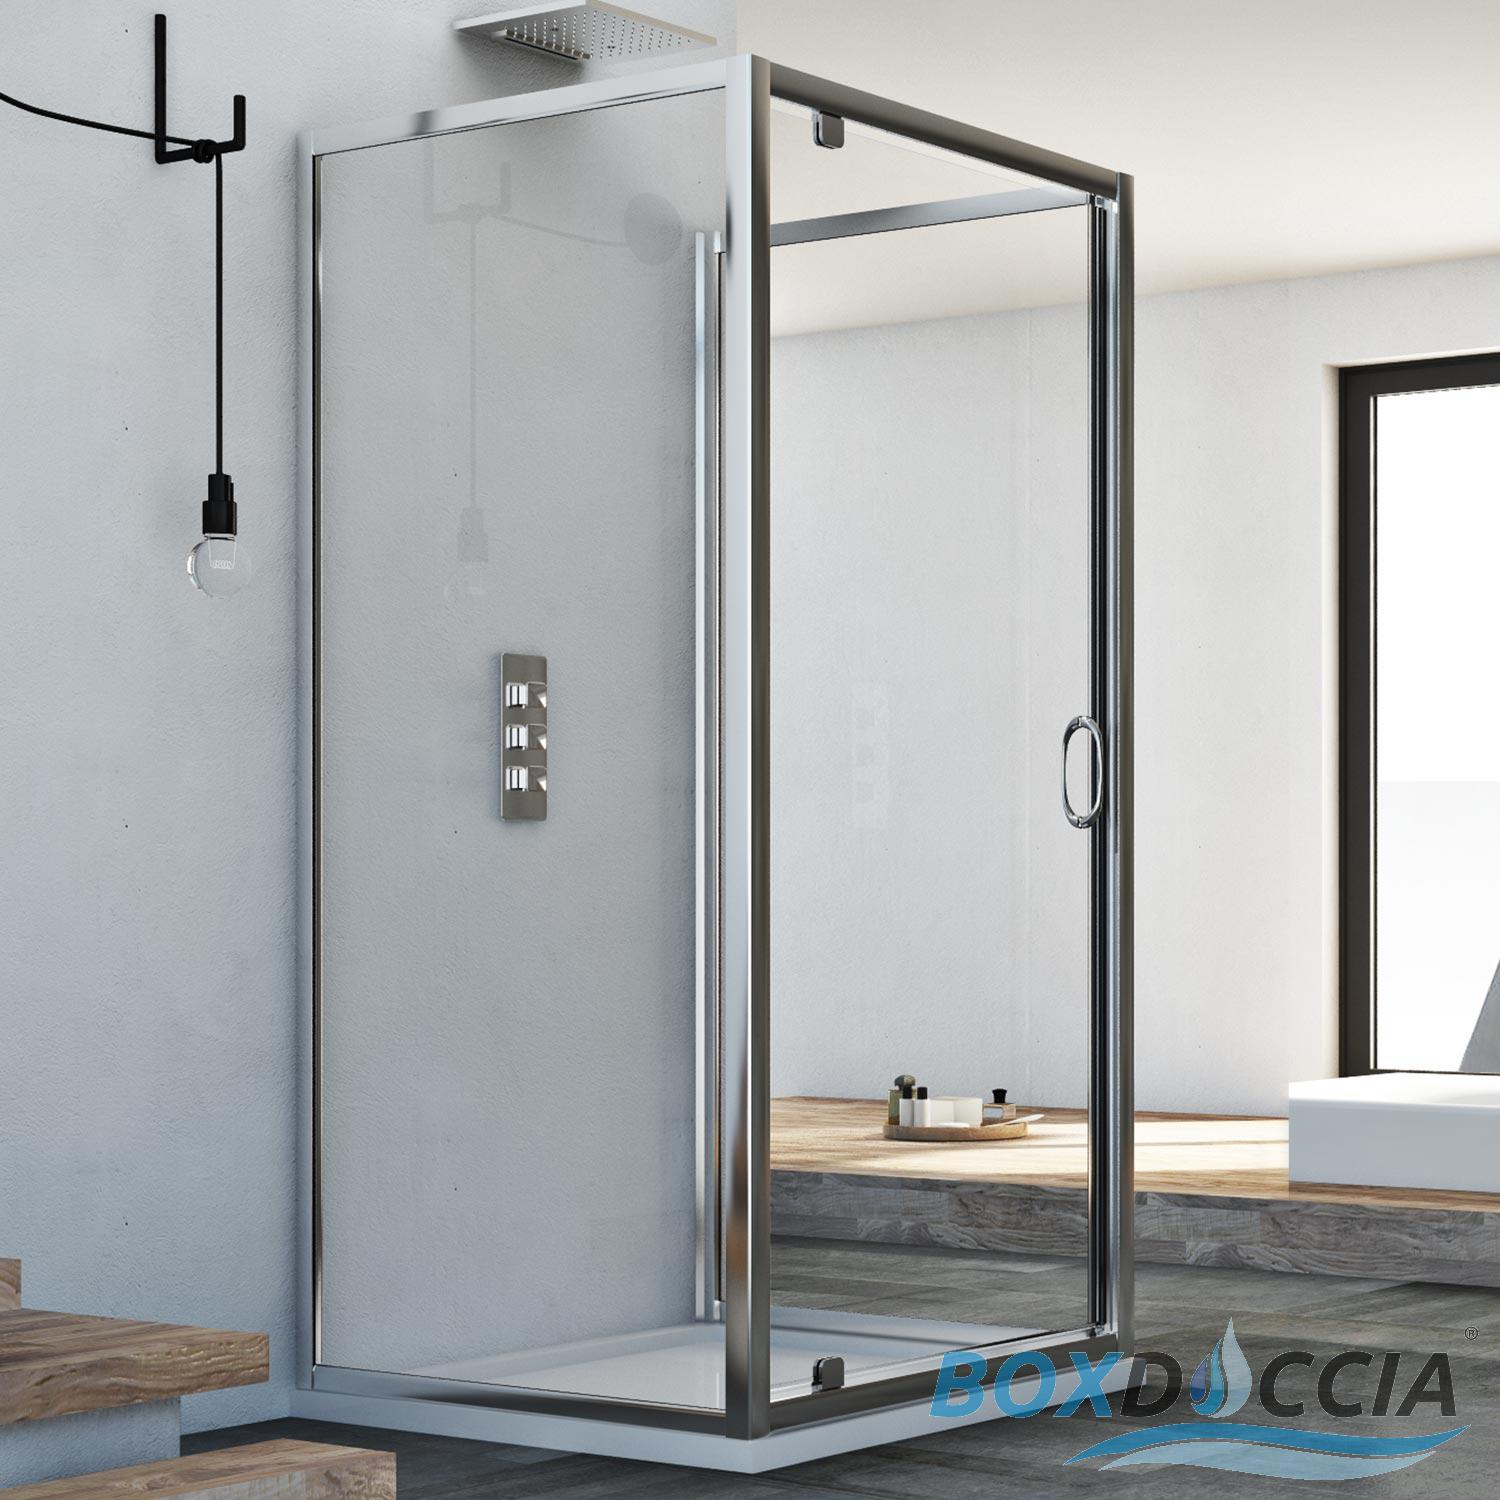 3-SIDED SHOWER ENCLOSURE CUBICLE PIVOT DOOR OPENING FRONT SCREEN ...